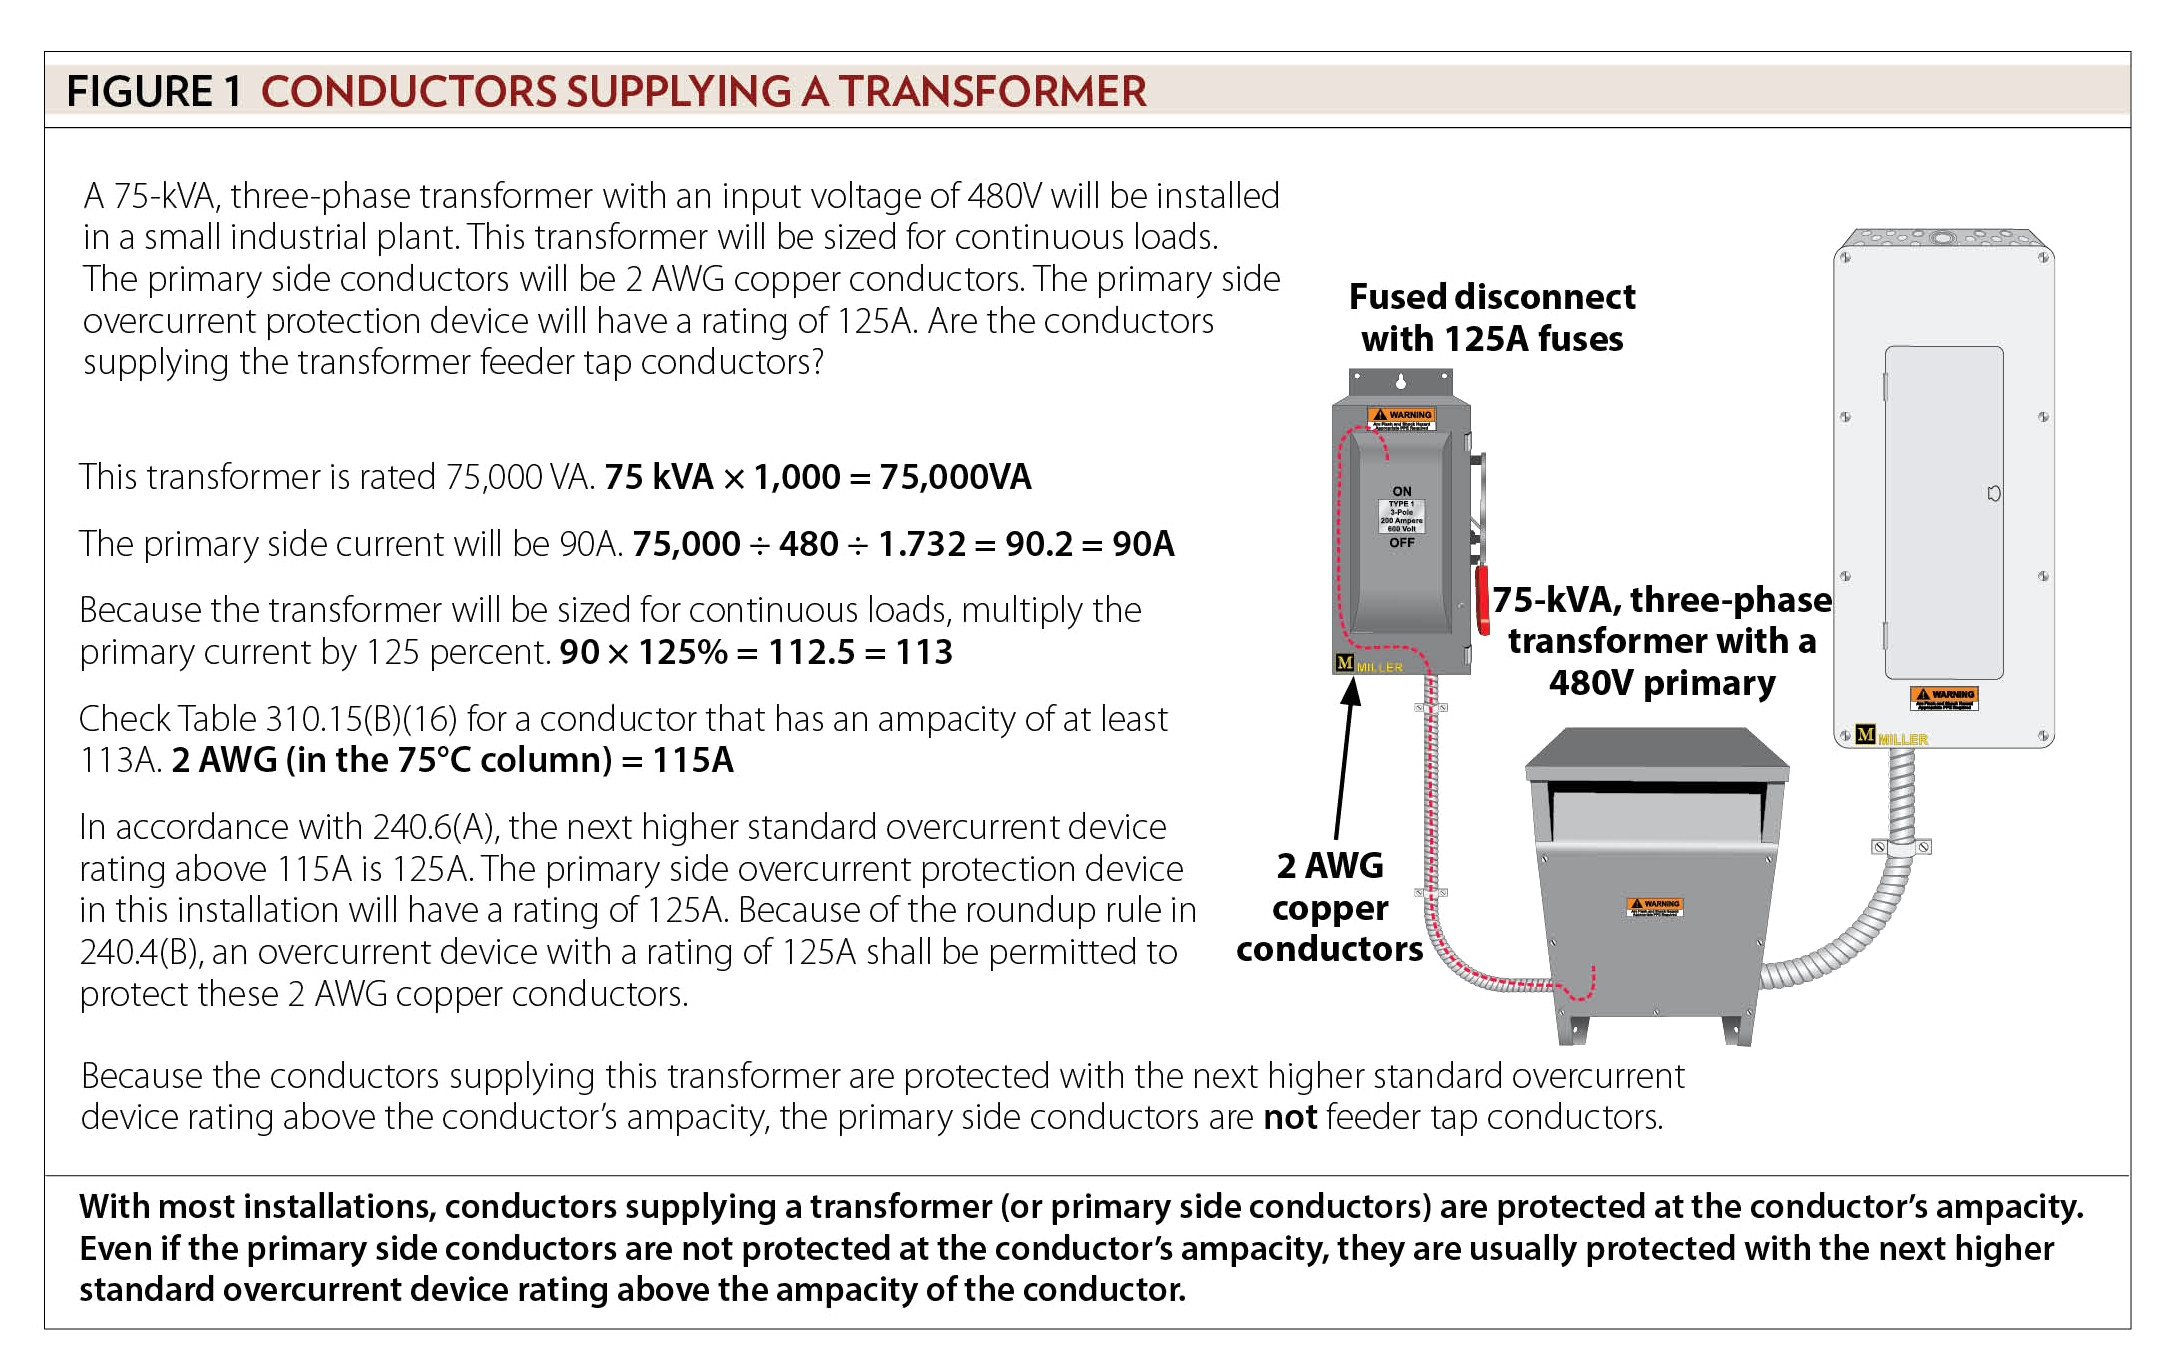 30 Kva Transformer Wiring Diagram | Wiring Diagram - 3 Phase Transformer Wiring Diagram